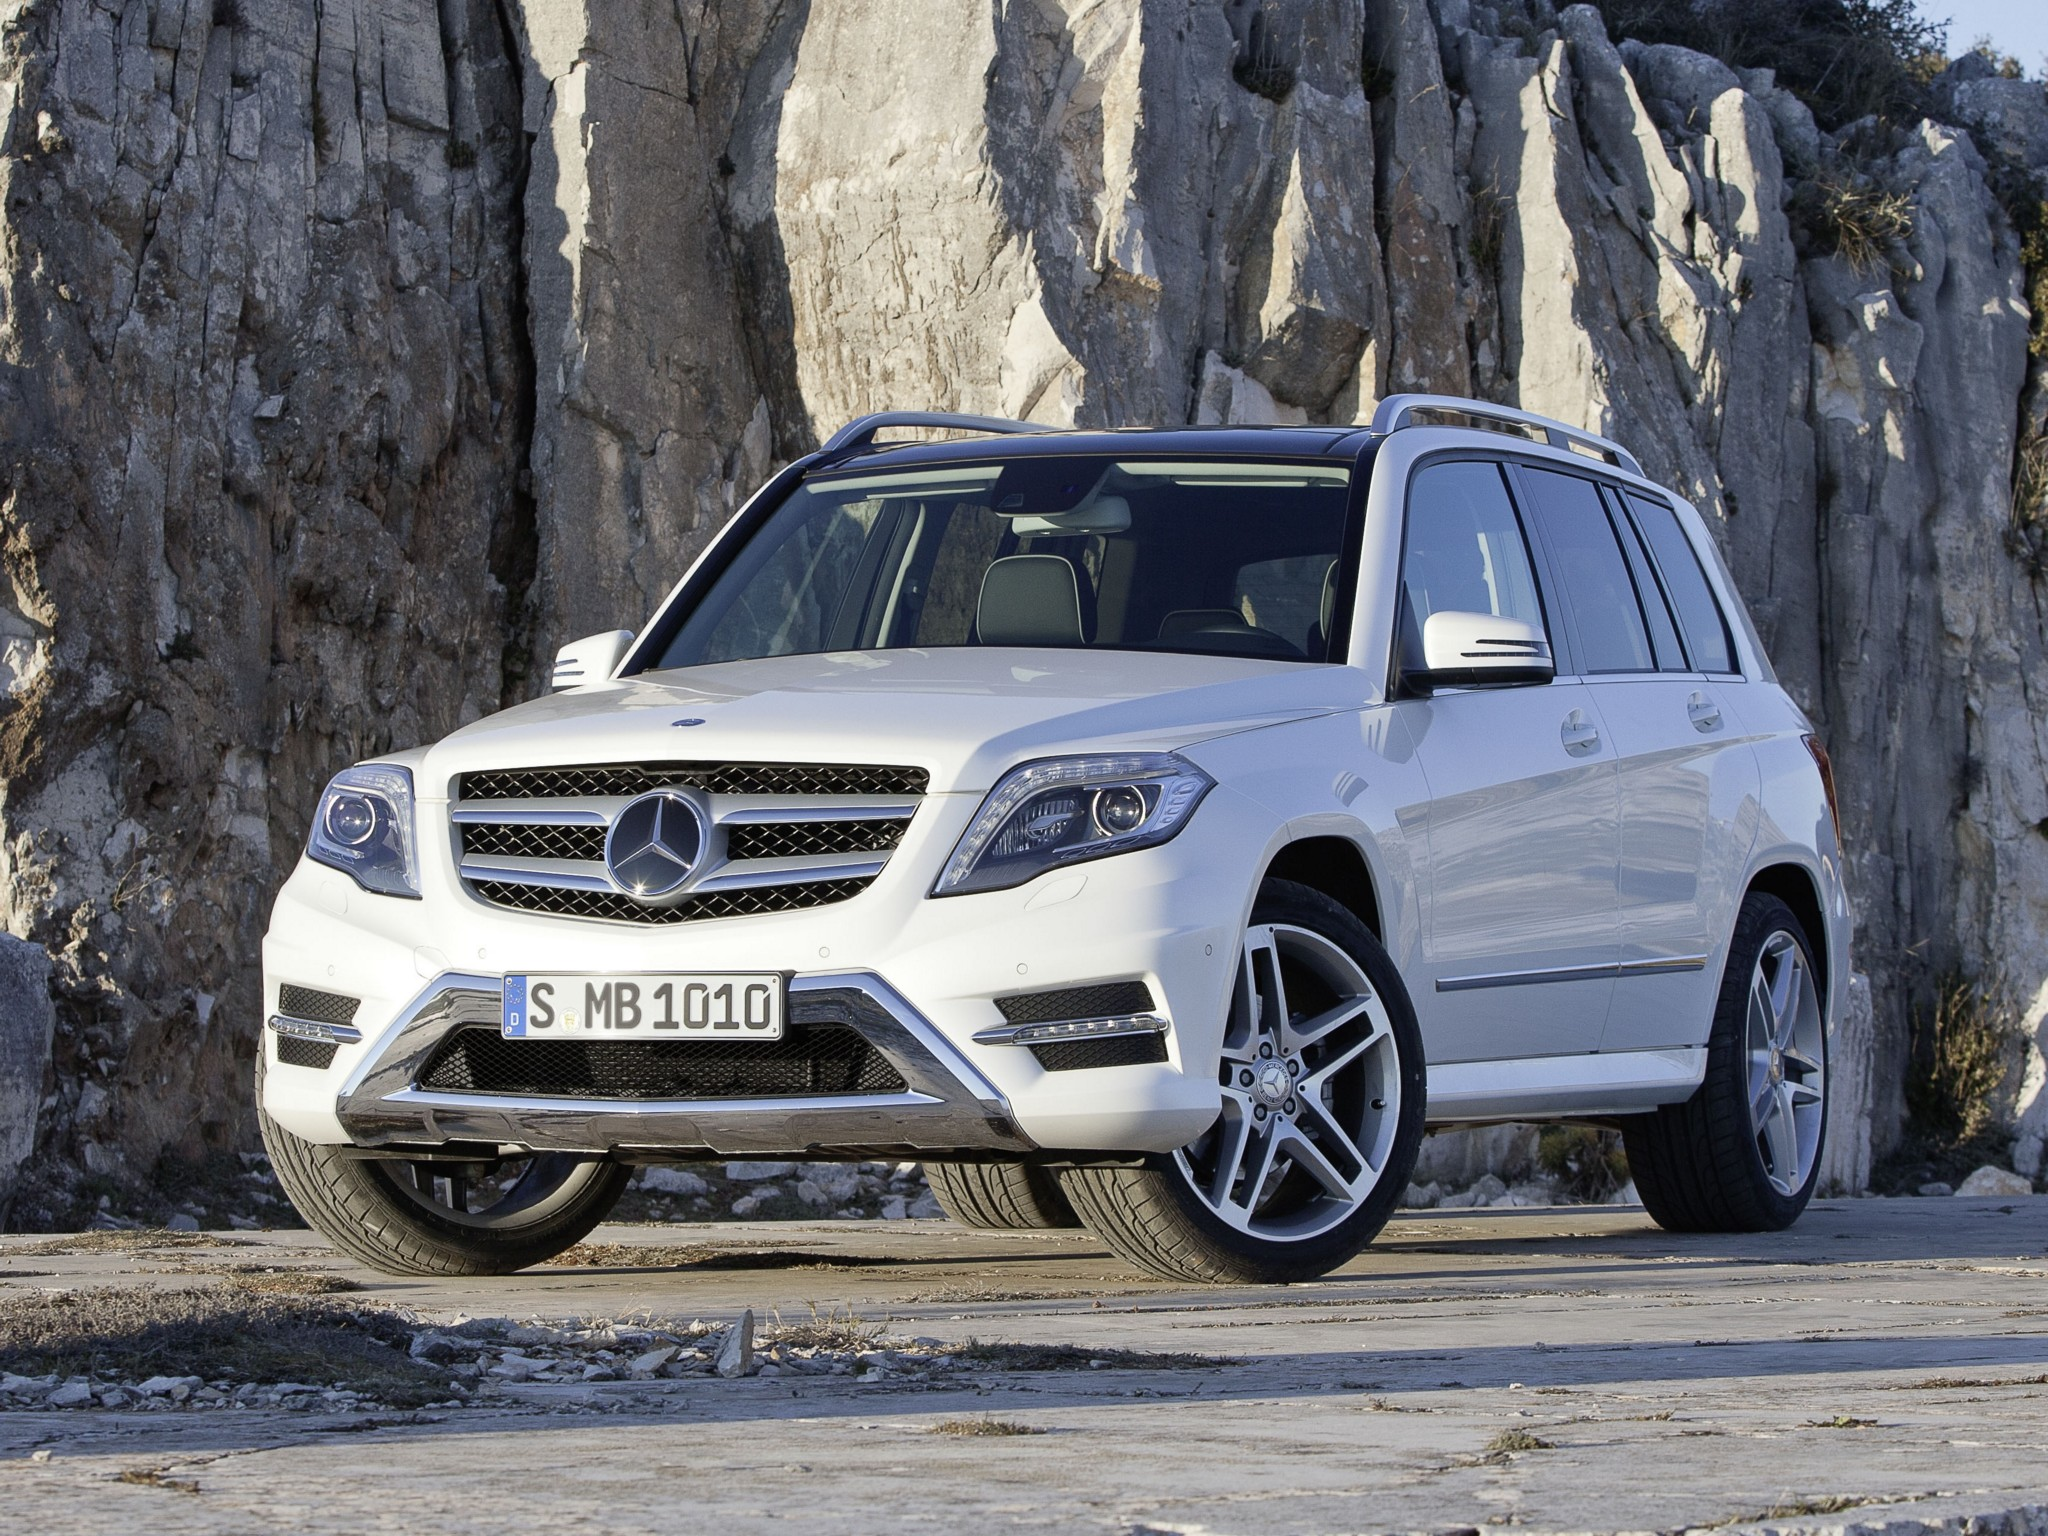 Mercedes planning glk 63 amg using 4 liter twin turbo v8 for Mercedes benz glk amg